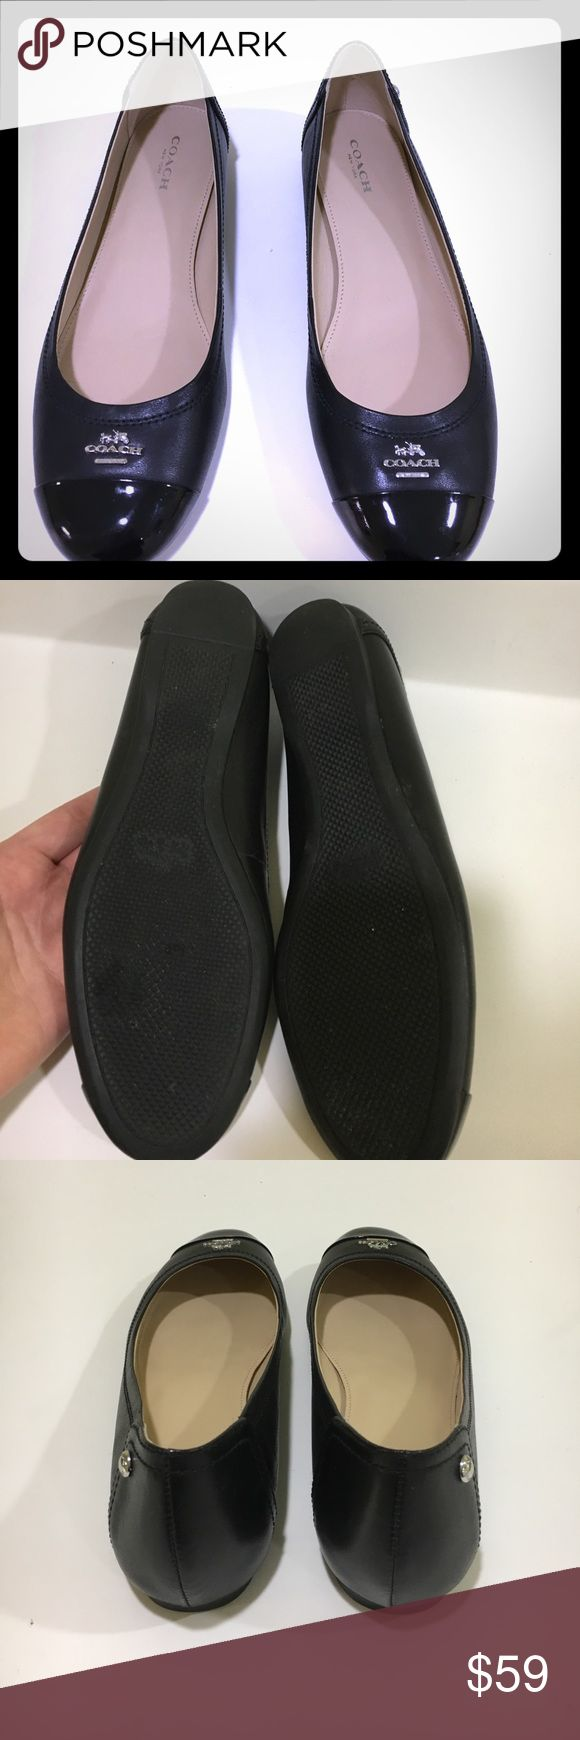 Coach Flats Excellent Condition! Black Coach Flats worn twice. In excellent condition. See pictures. Coach Shoes Flats & Loafers